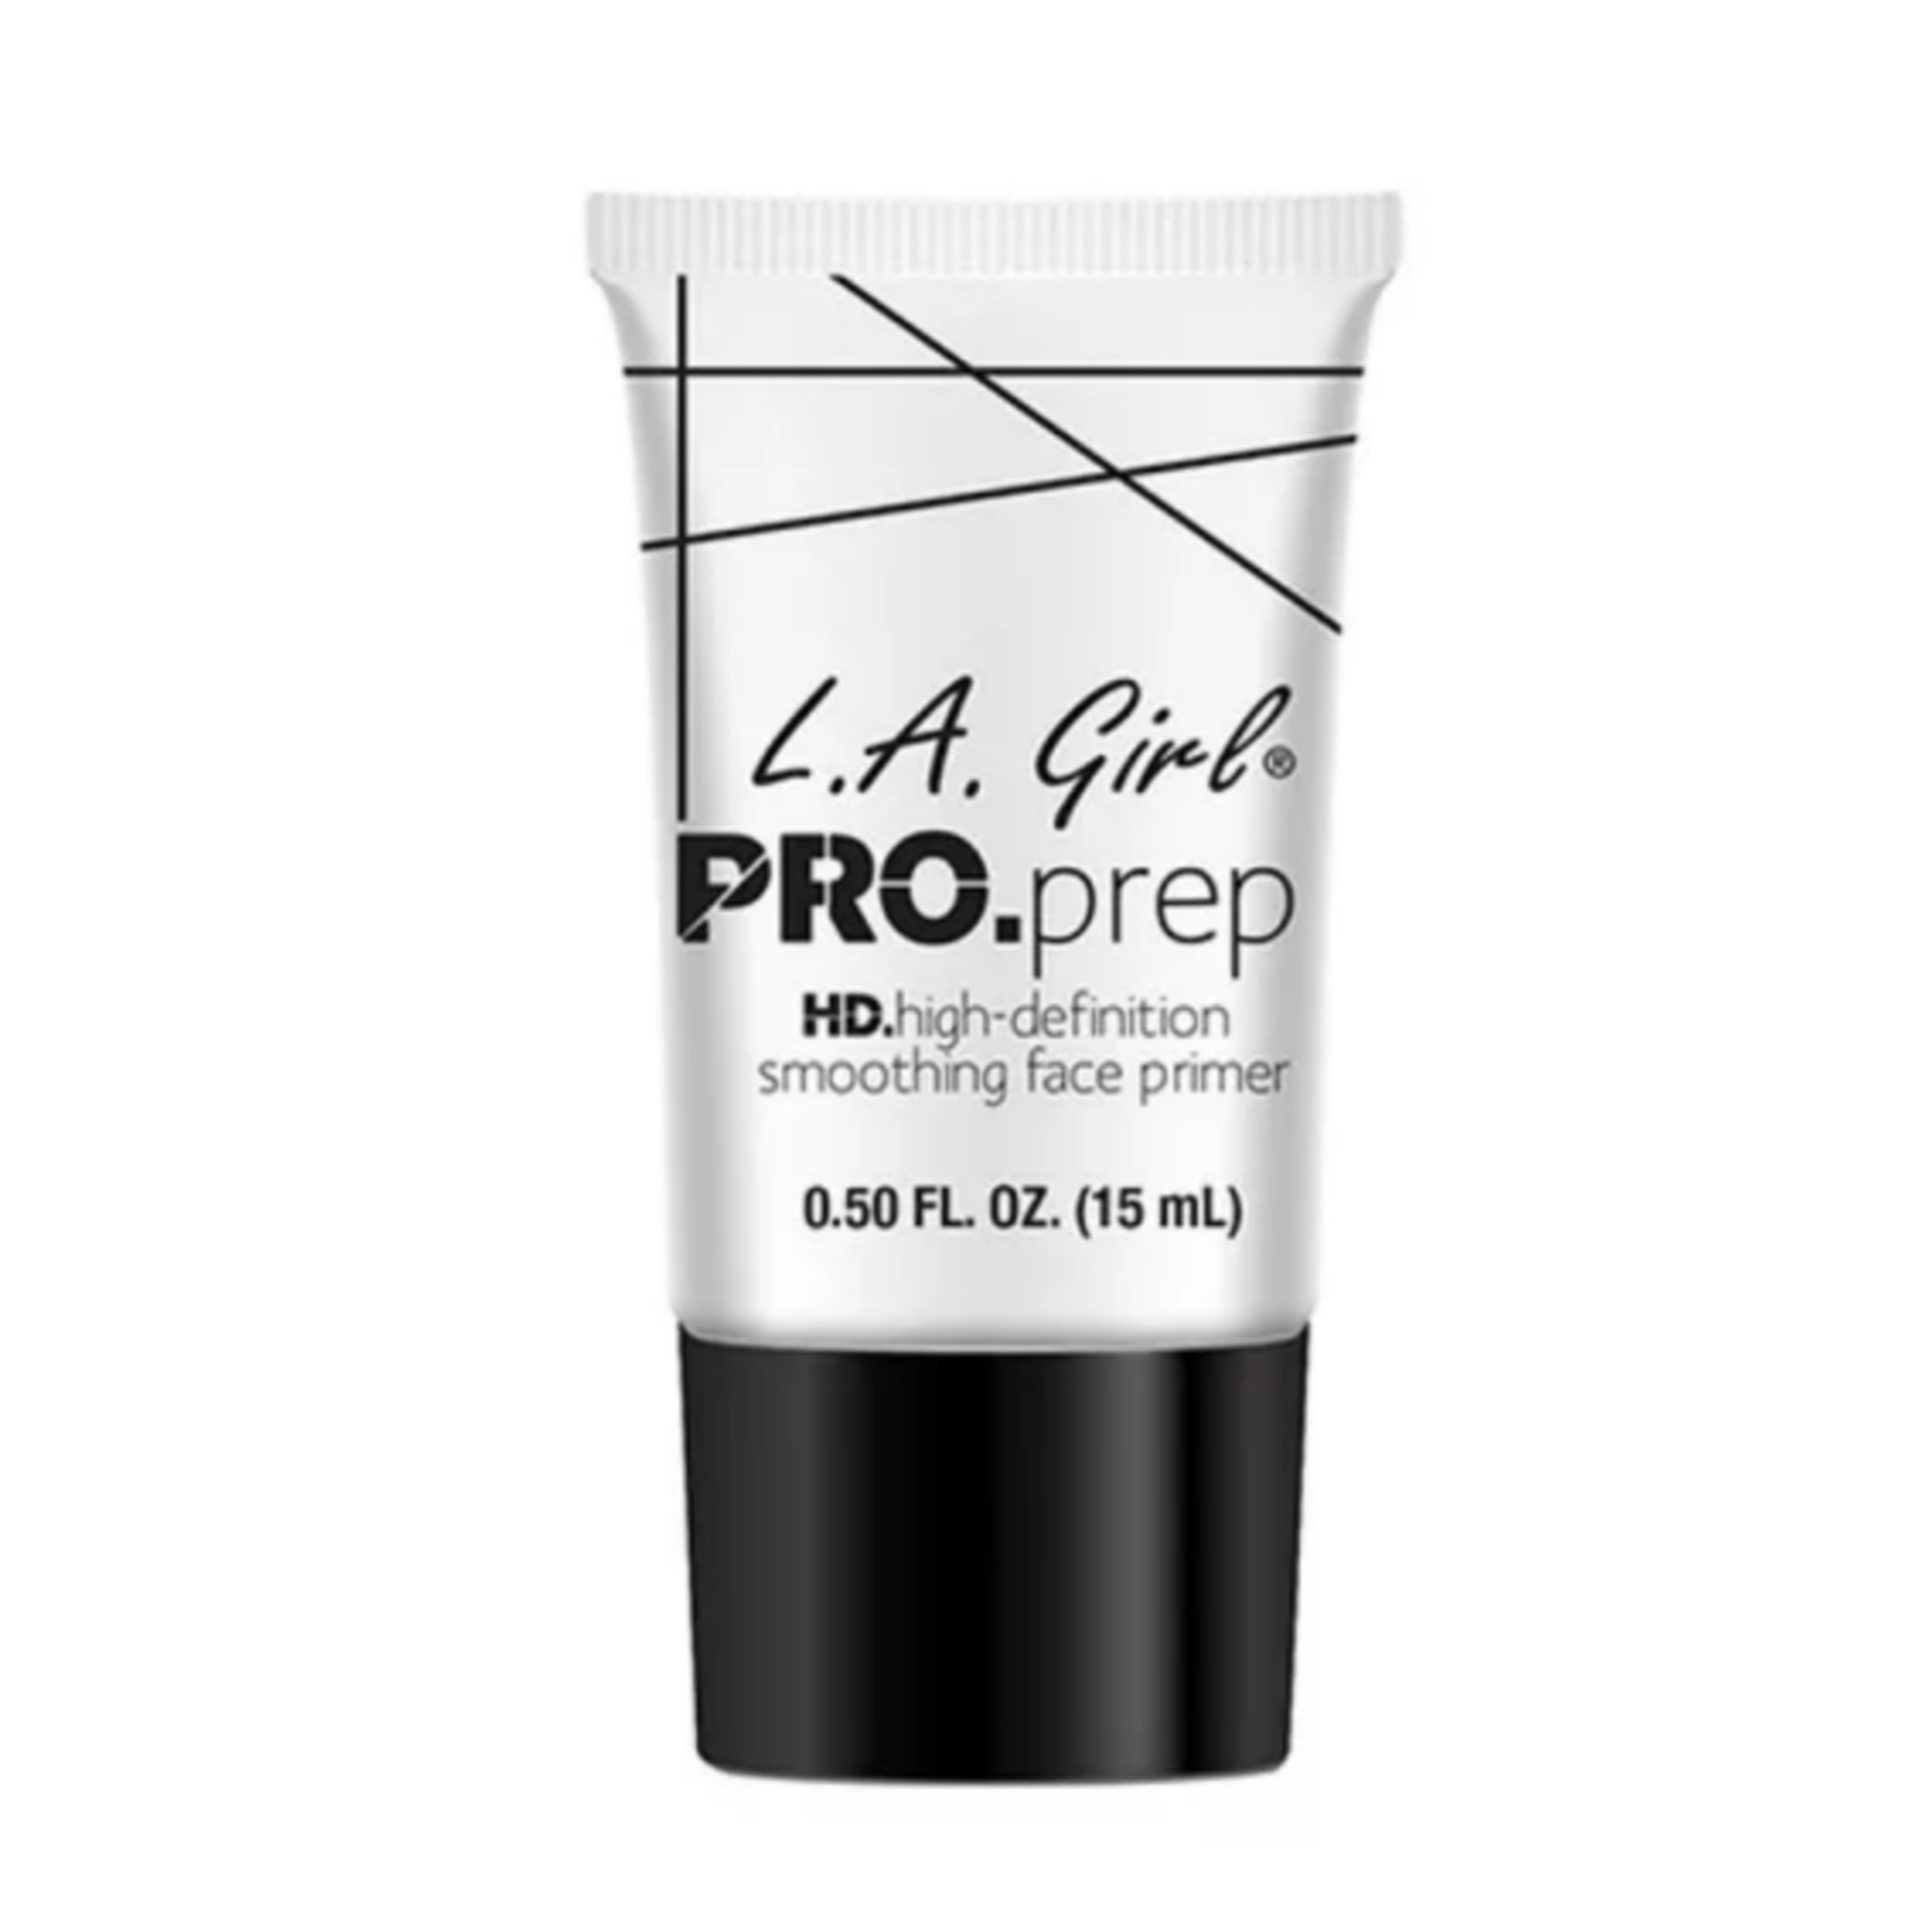 cheap primer in India under 1000, LA girl USA primer